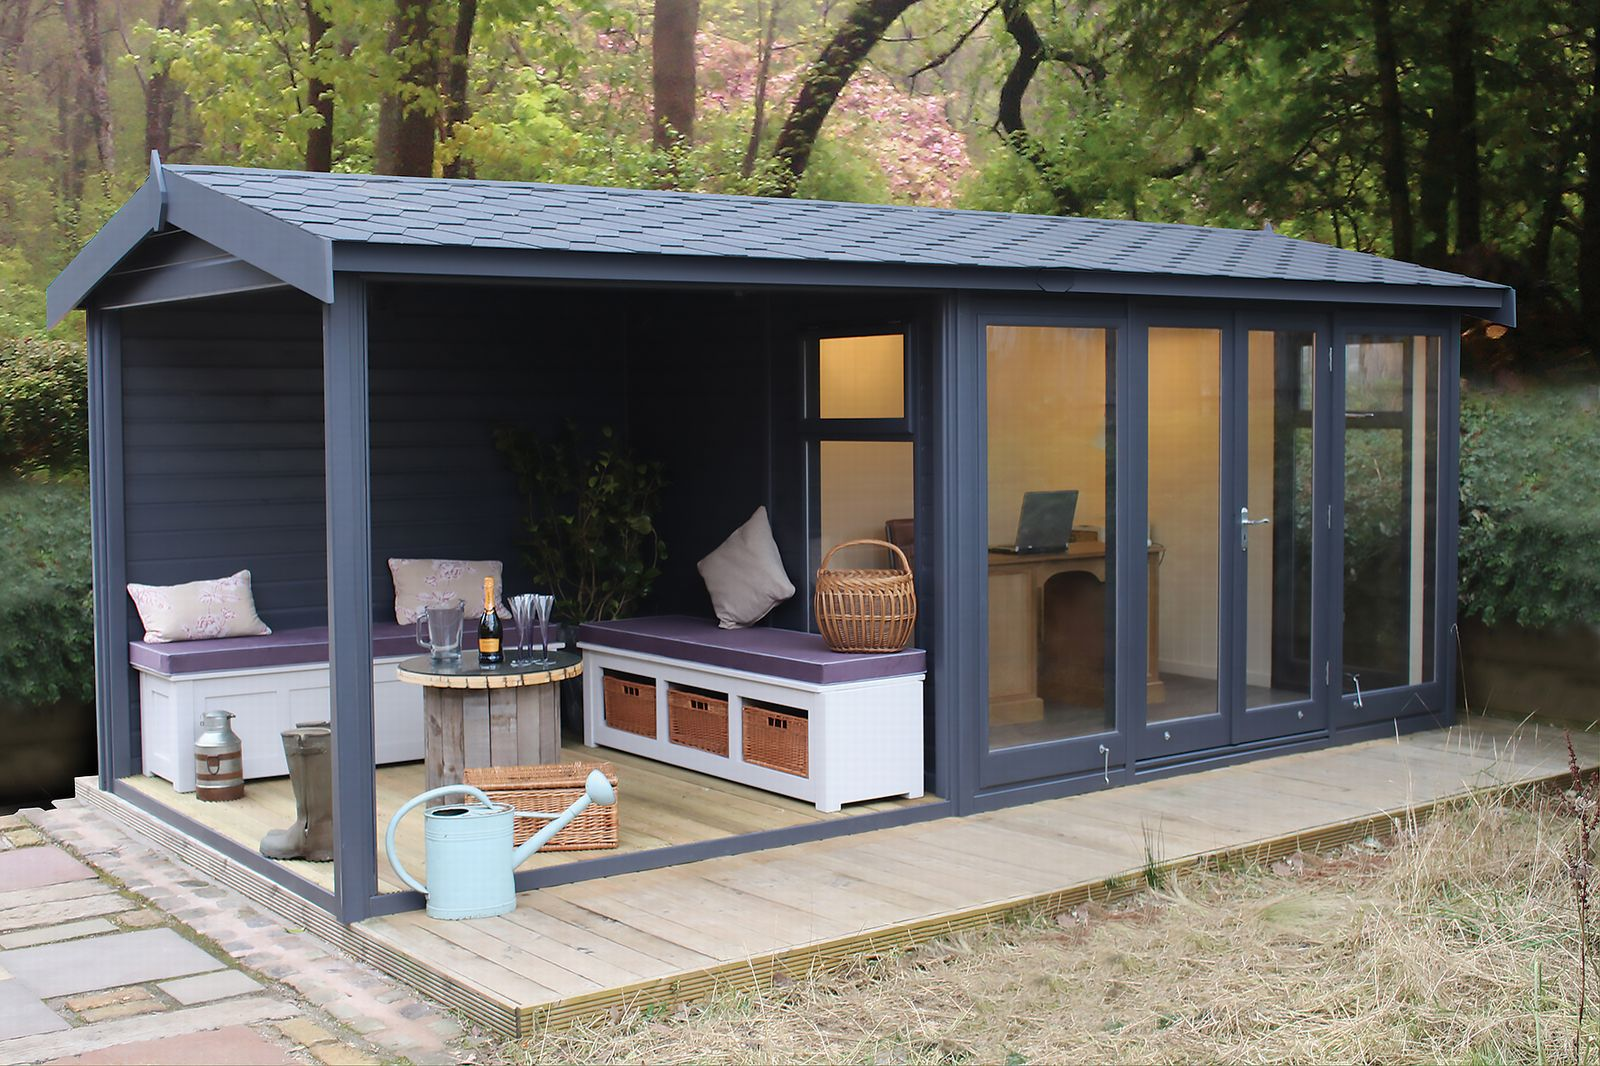 A Malvern Garden Office painted in a contemporary grey colour